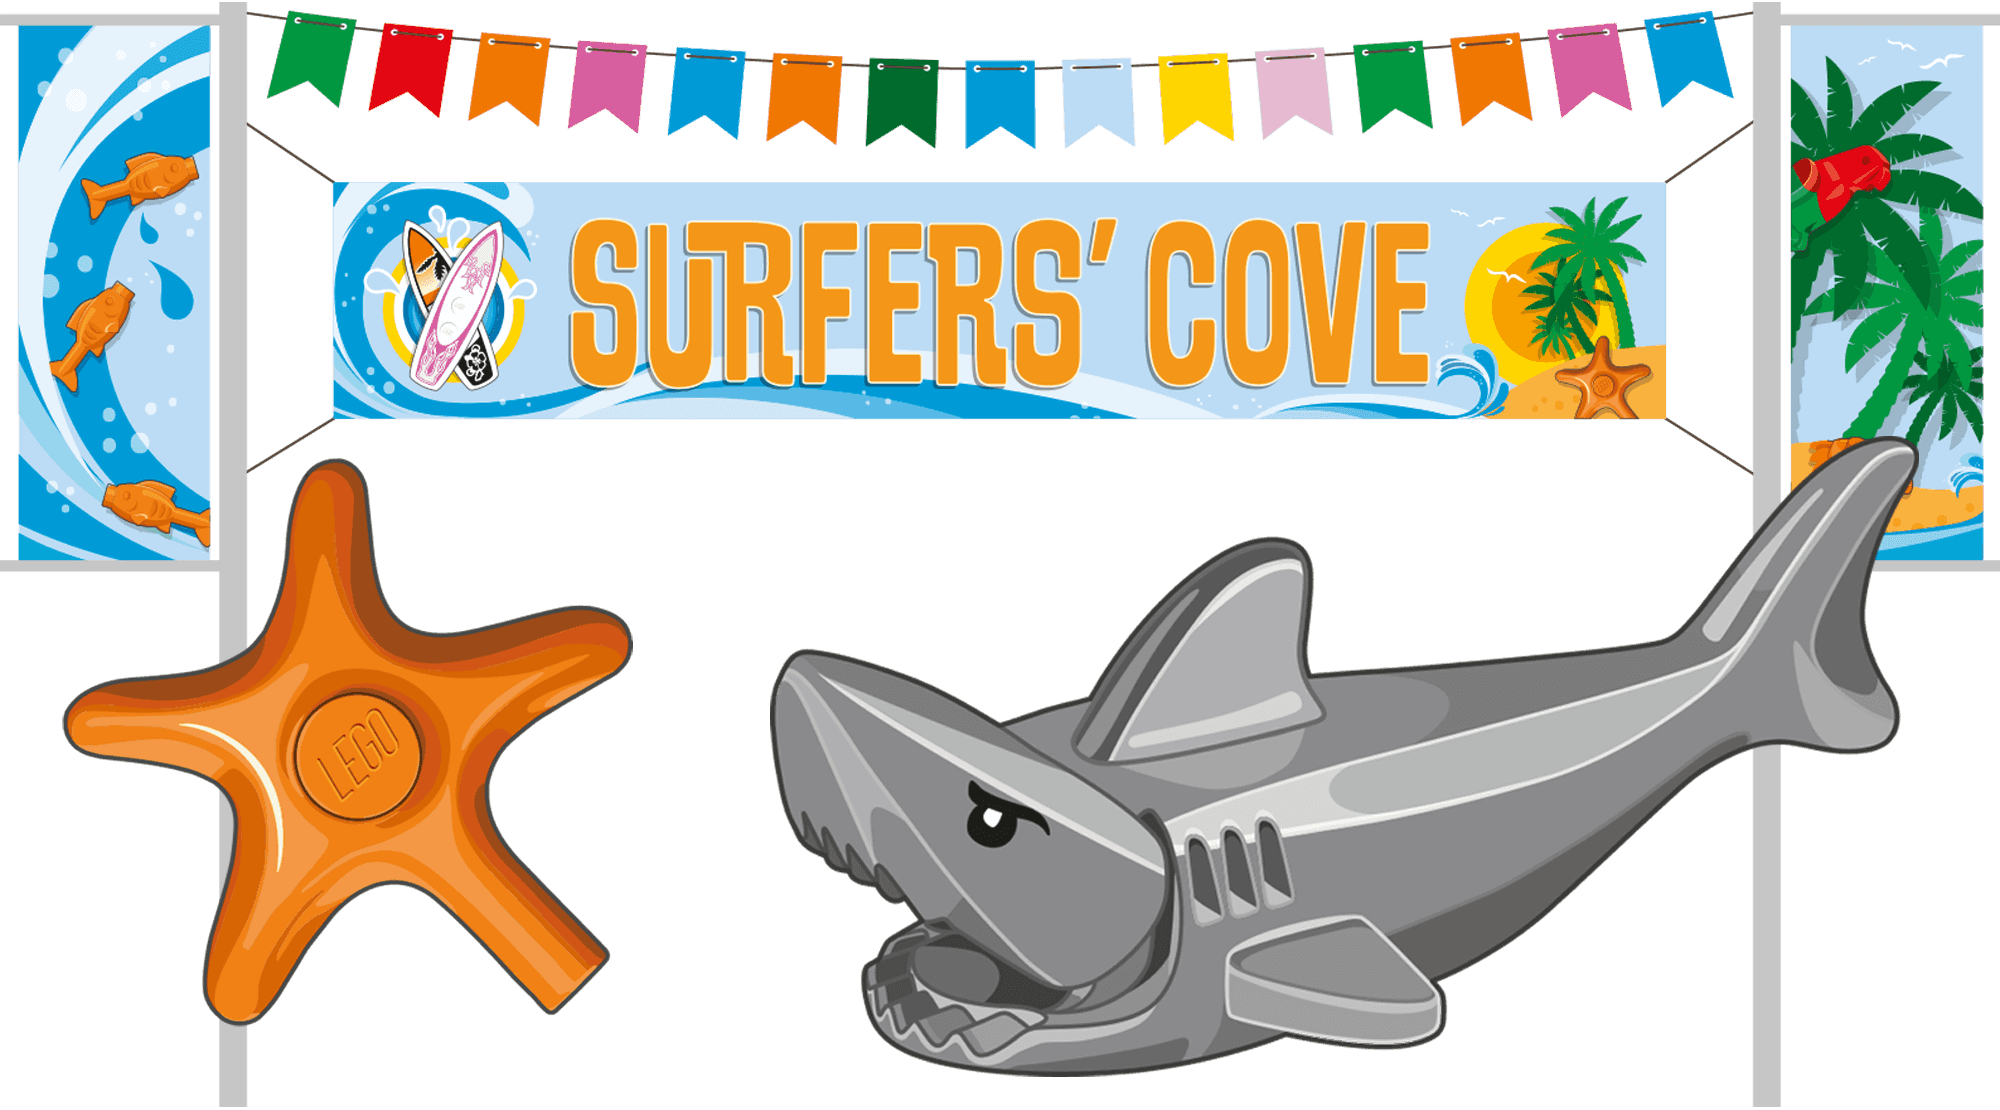 Surfers' Cove flags and banners